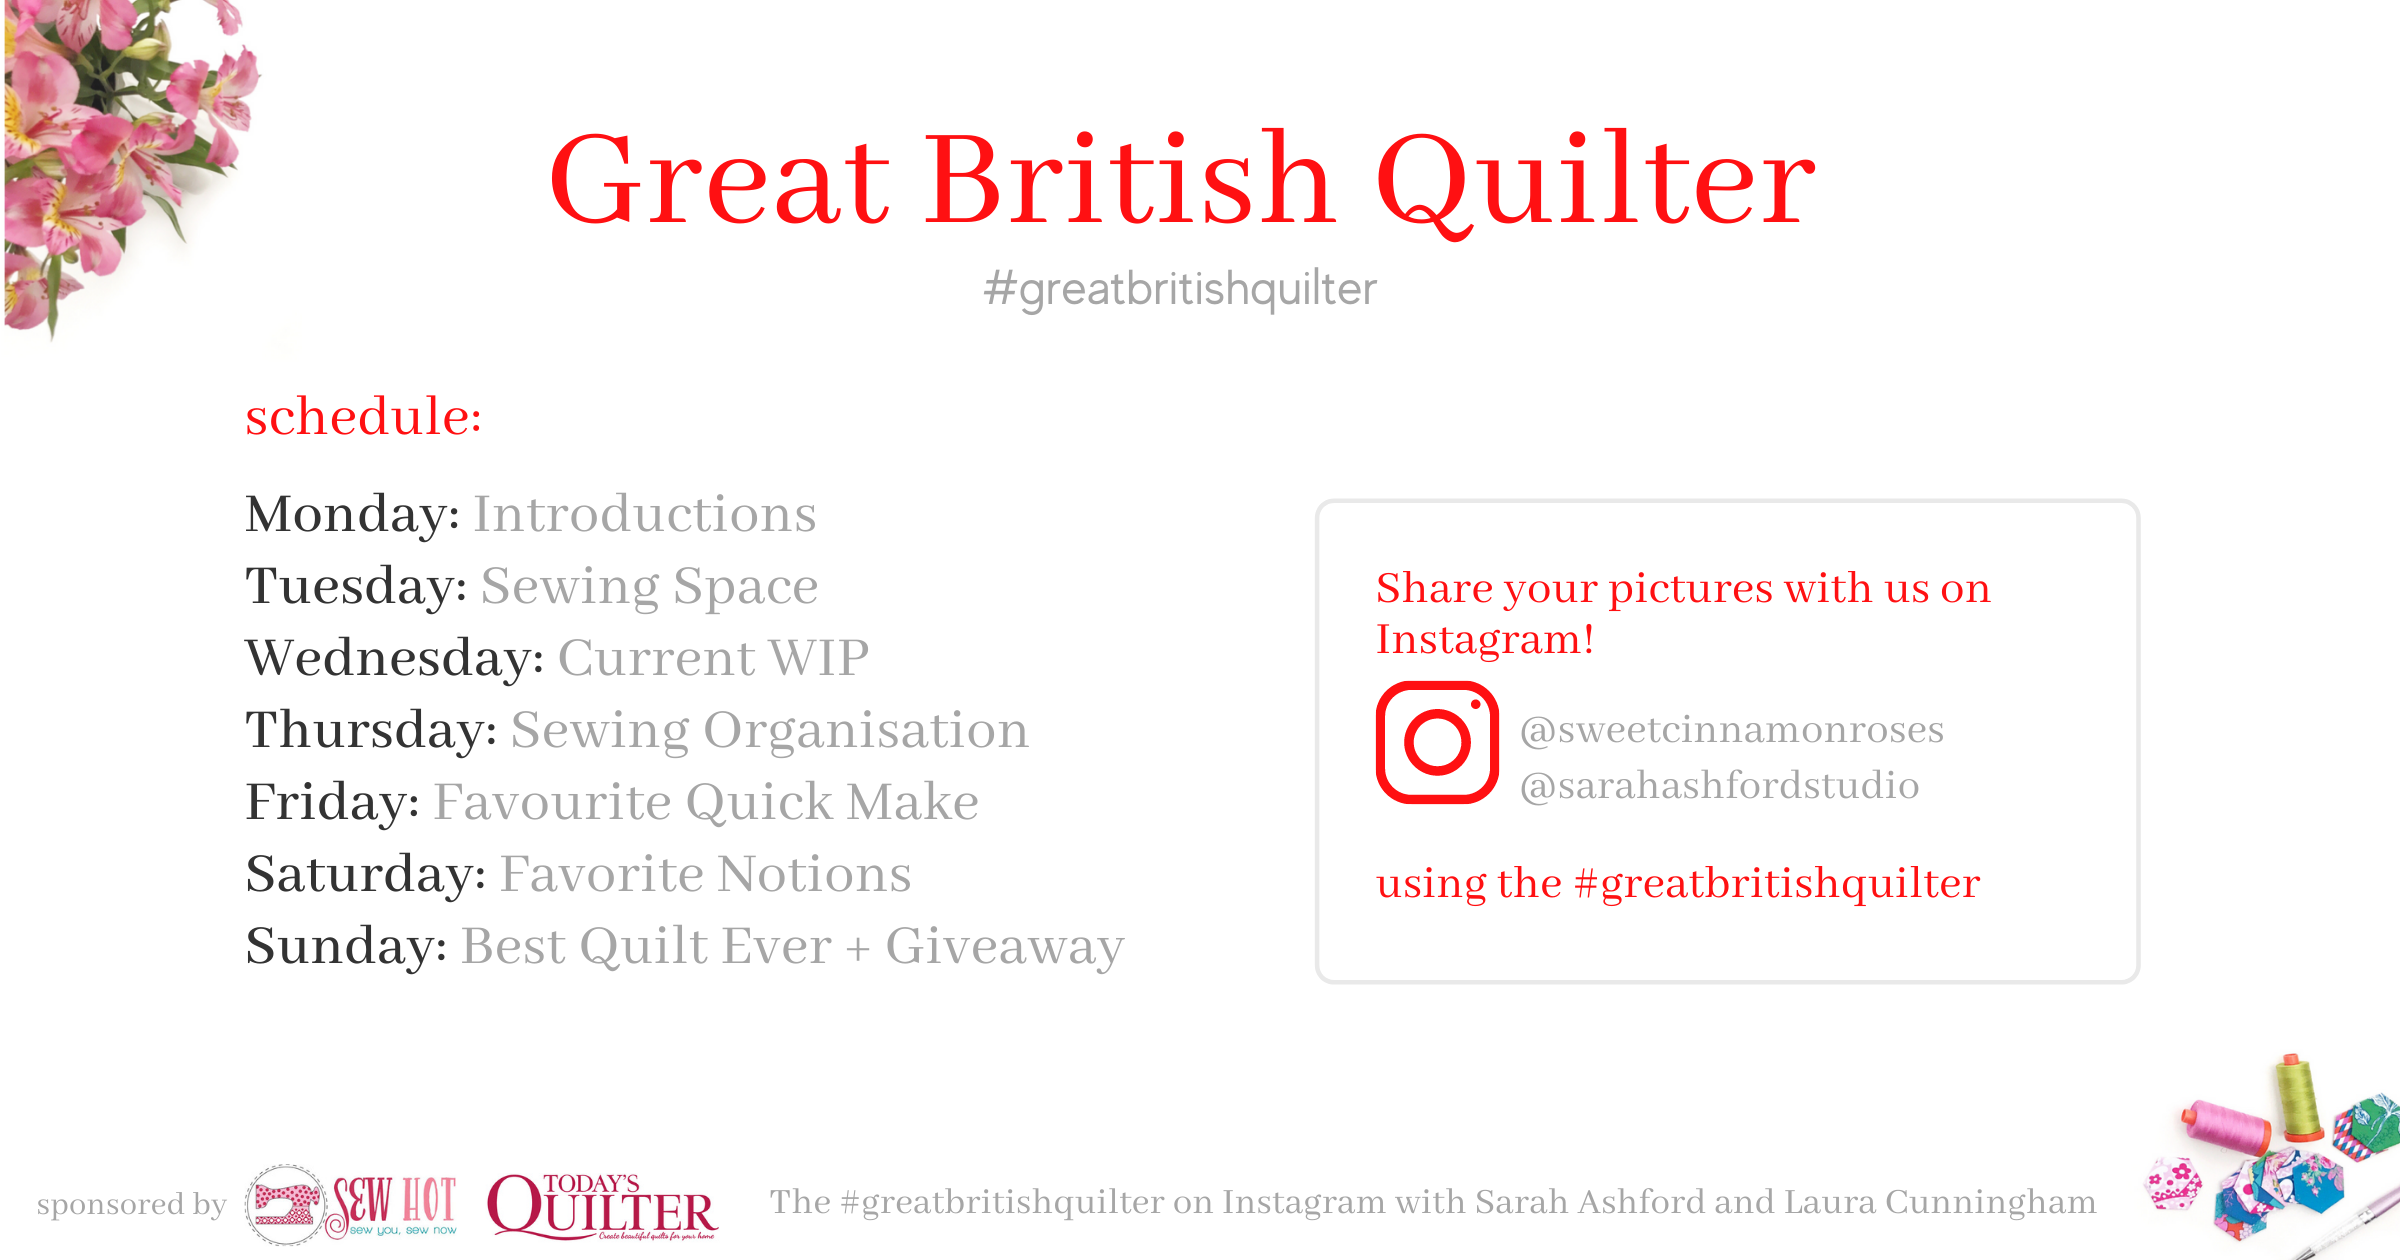 Great British Quilter - event hosted by Sarah Ashford and Laura Cunningham of Sweet Cinnamon Roses